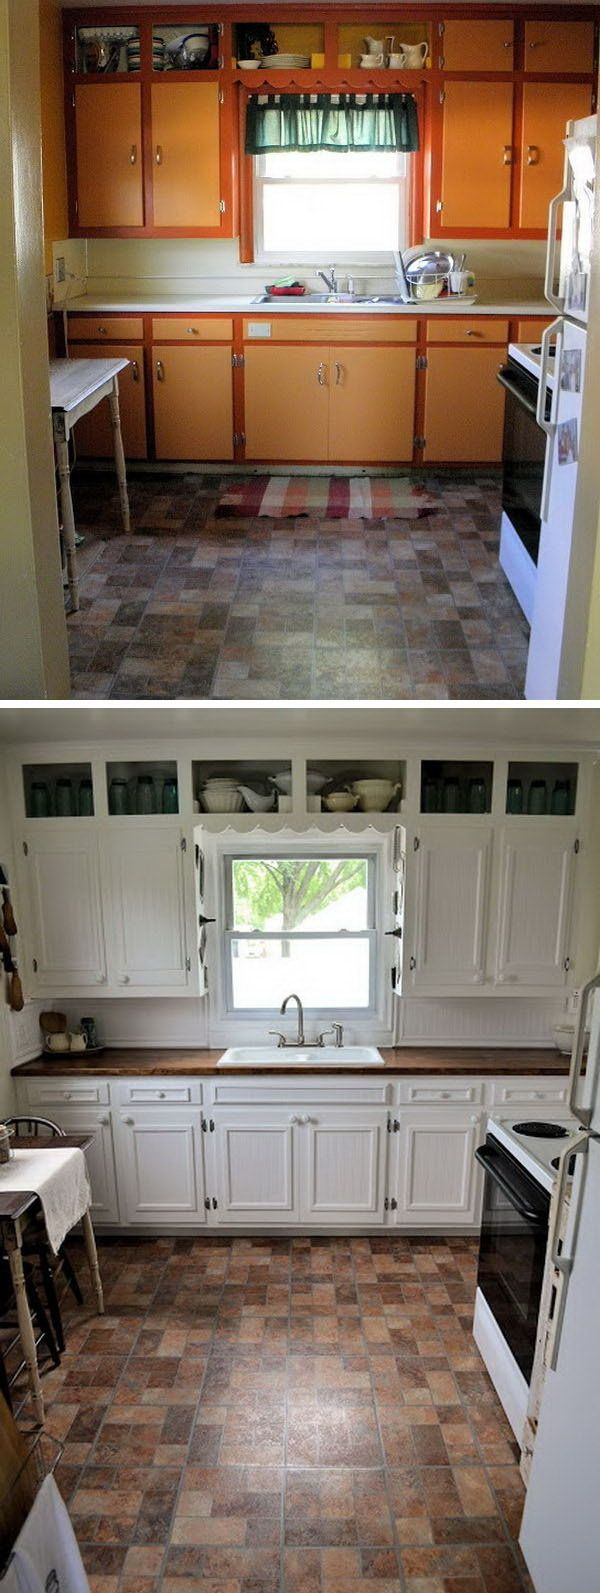 Bathroom Remodel On A Budget 25+ best cheap kitchen remodel ideas on pinterest | cheap kitchen